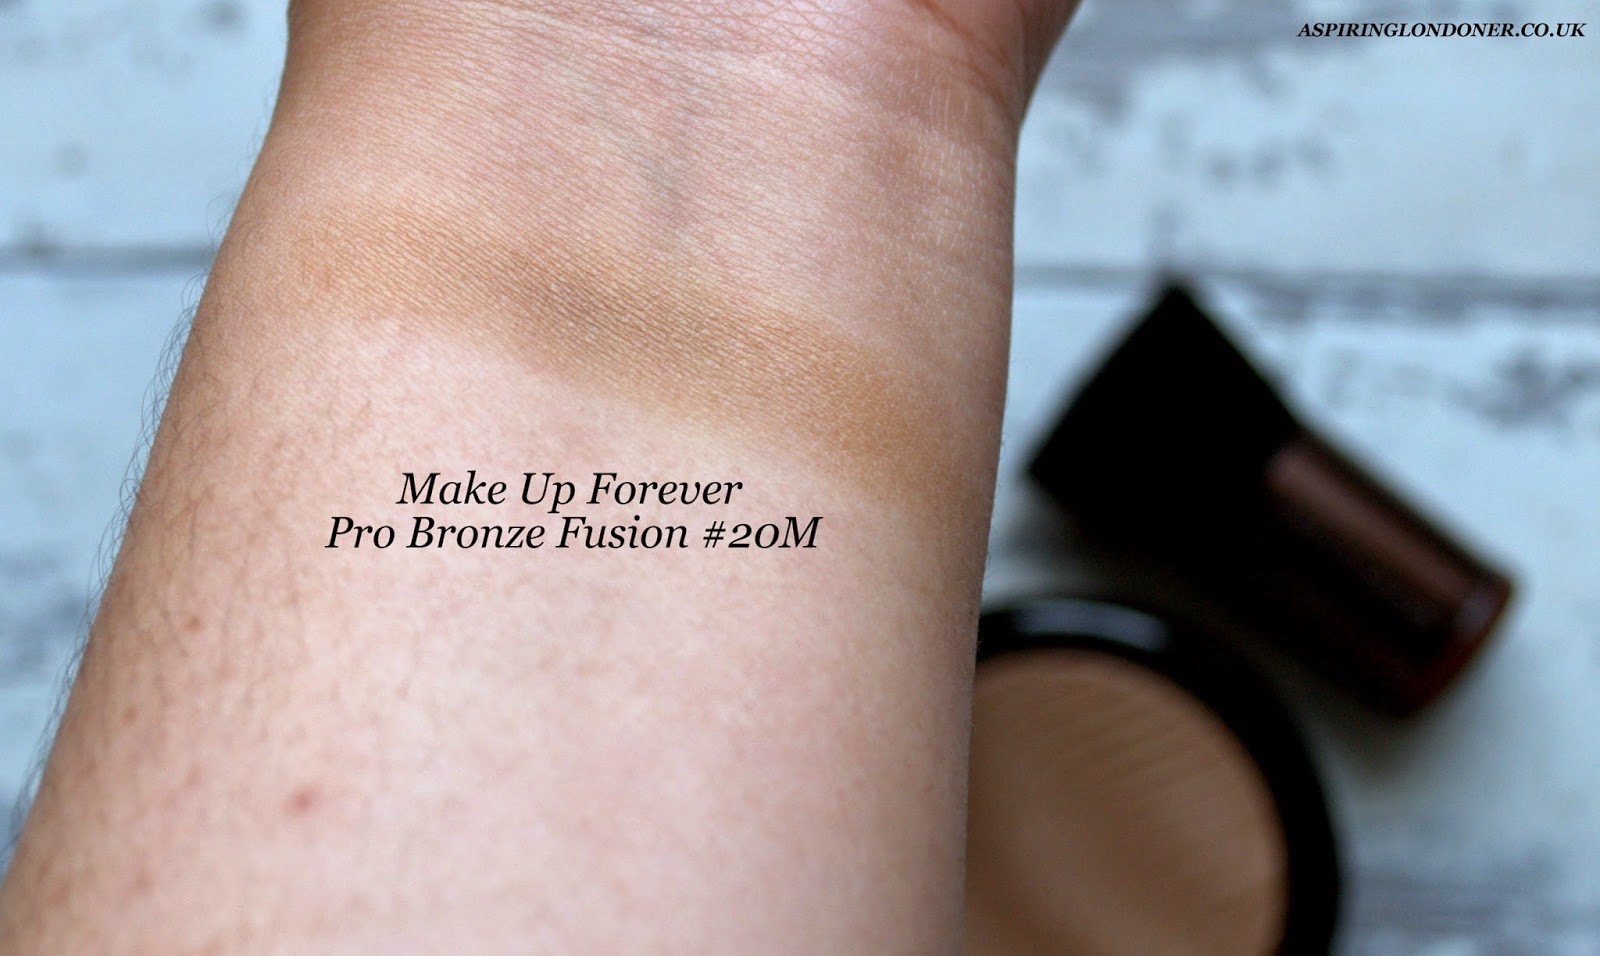 Make Up For Ever Pro Bronze Fusion #20M Sand Swatch - Aspiring Londoner